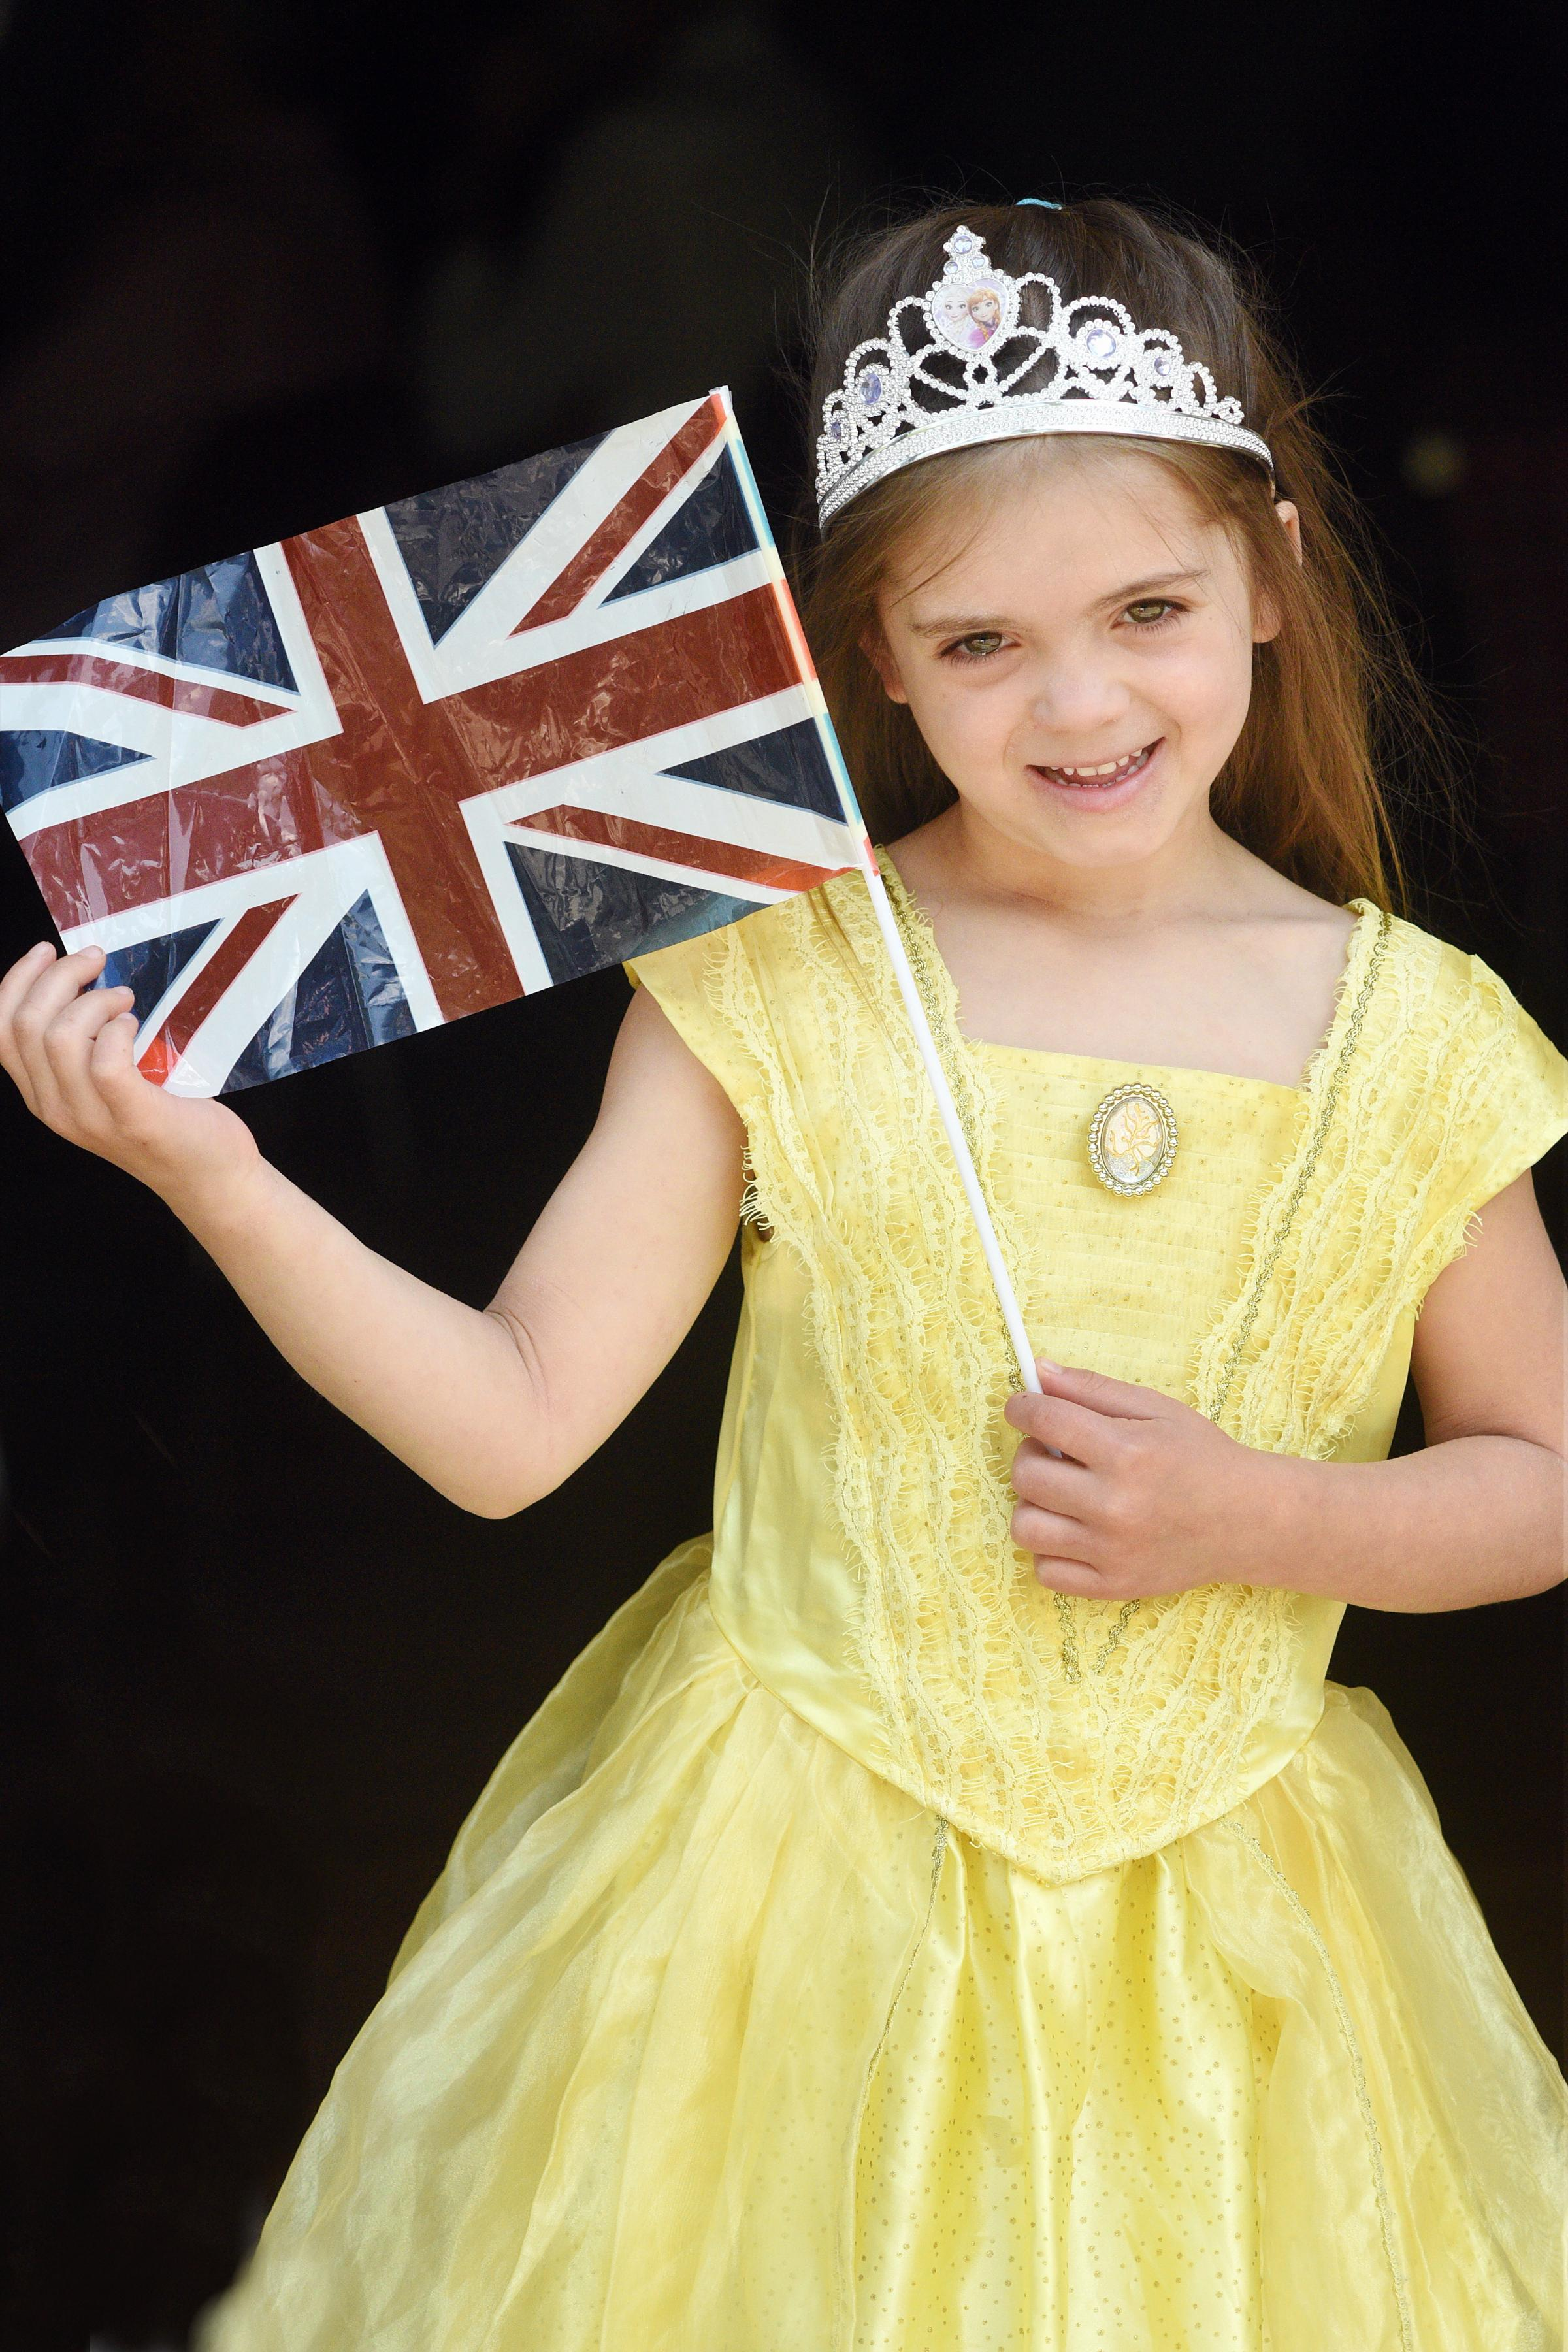 Mya Bridgeman (6)   stole the show in her tiara and princess dress. Photograph Simon Pizzey